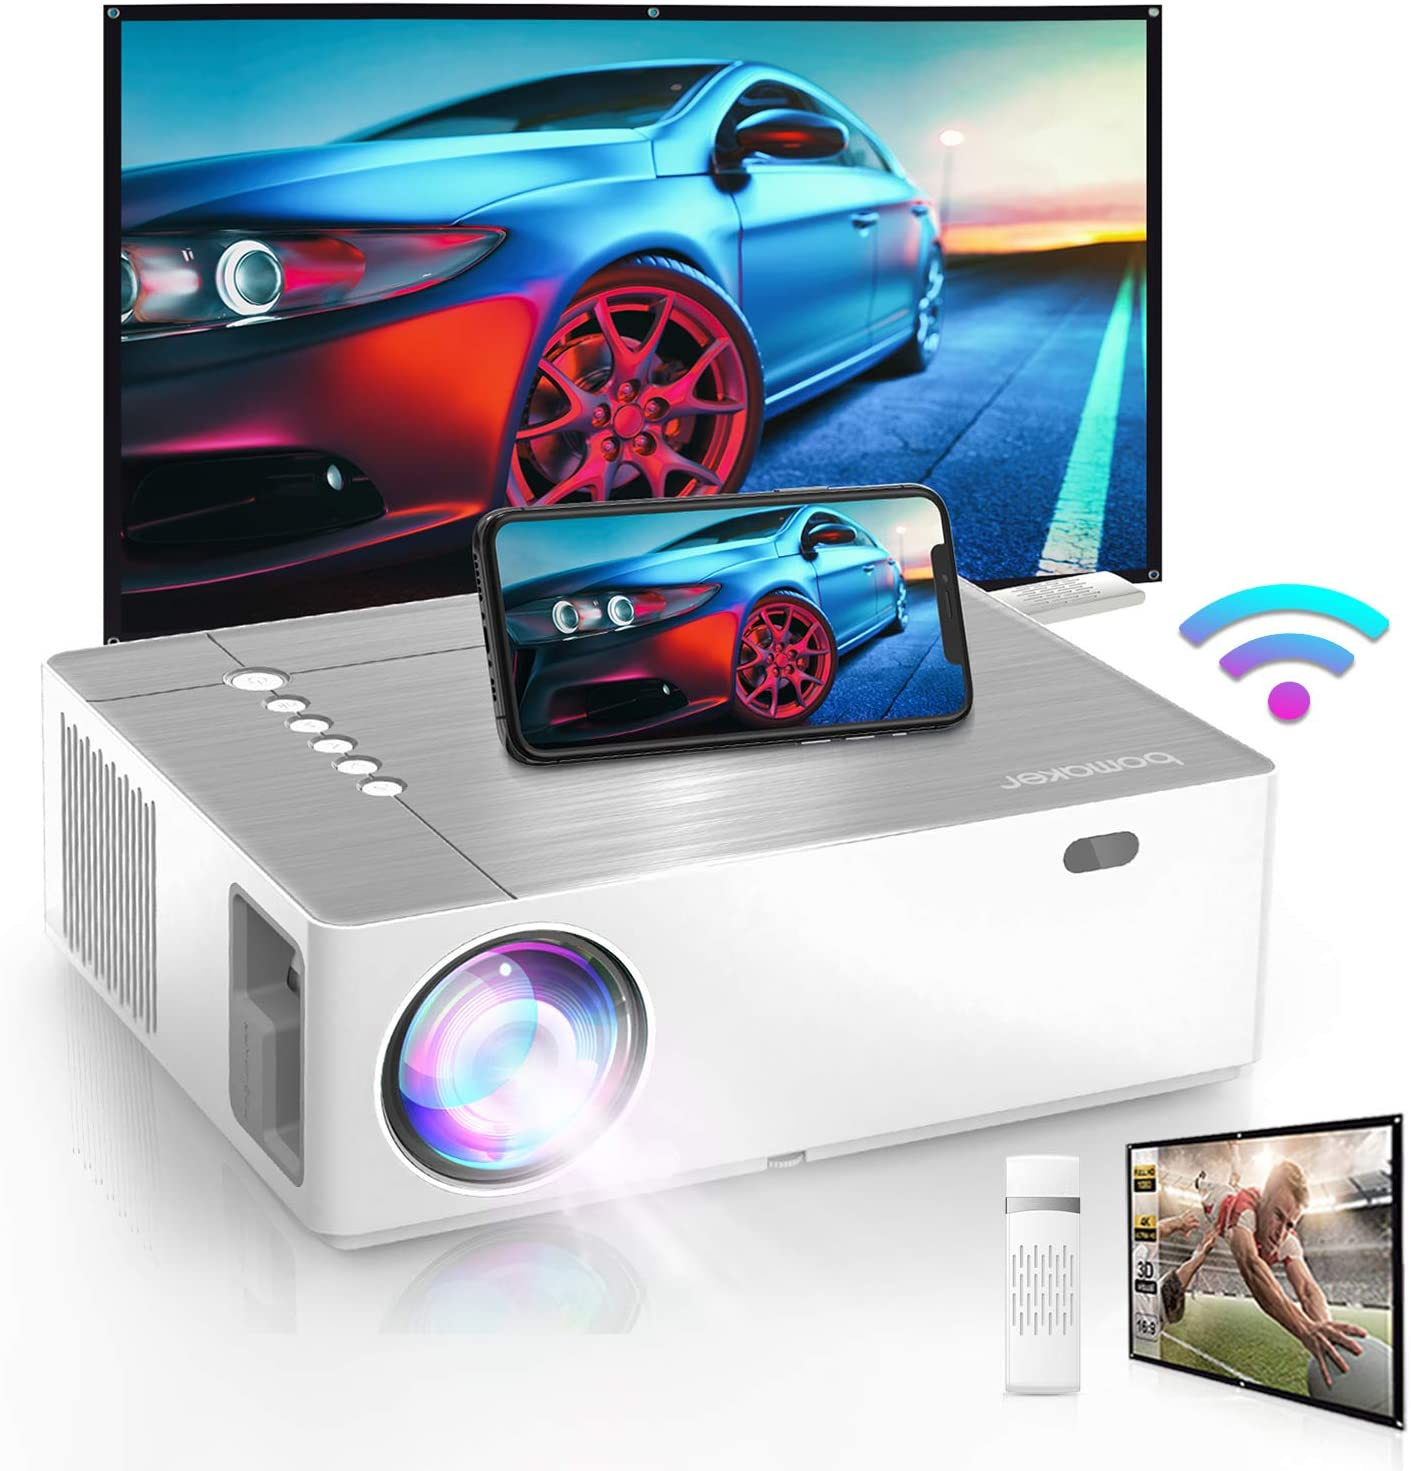 Bomaker 2021 Upgraded Outdoor Projector